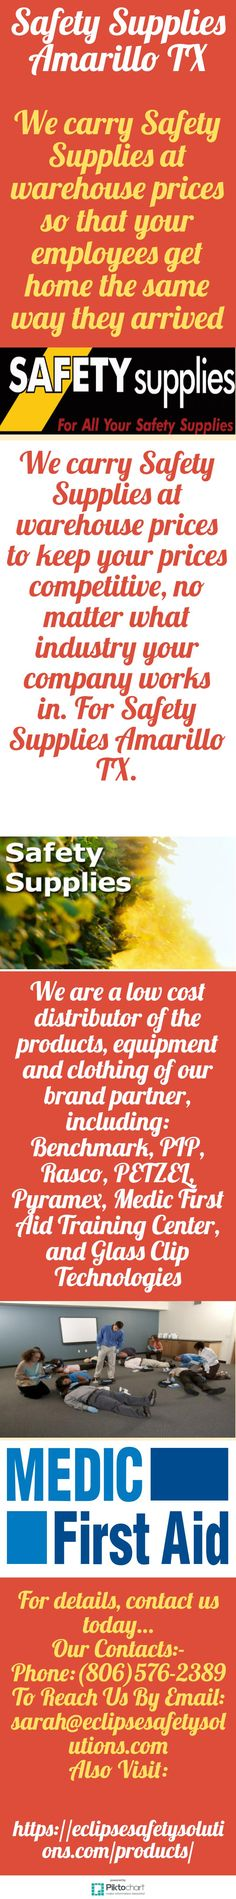 We carry Safety Supplies at warehouse prices so that your employees get home the same way they arrived. For Safety Supplies Amarillo TX, call at: (806)576-2389. https://eclipsesafetysolutions.com/products/